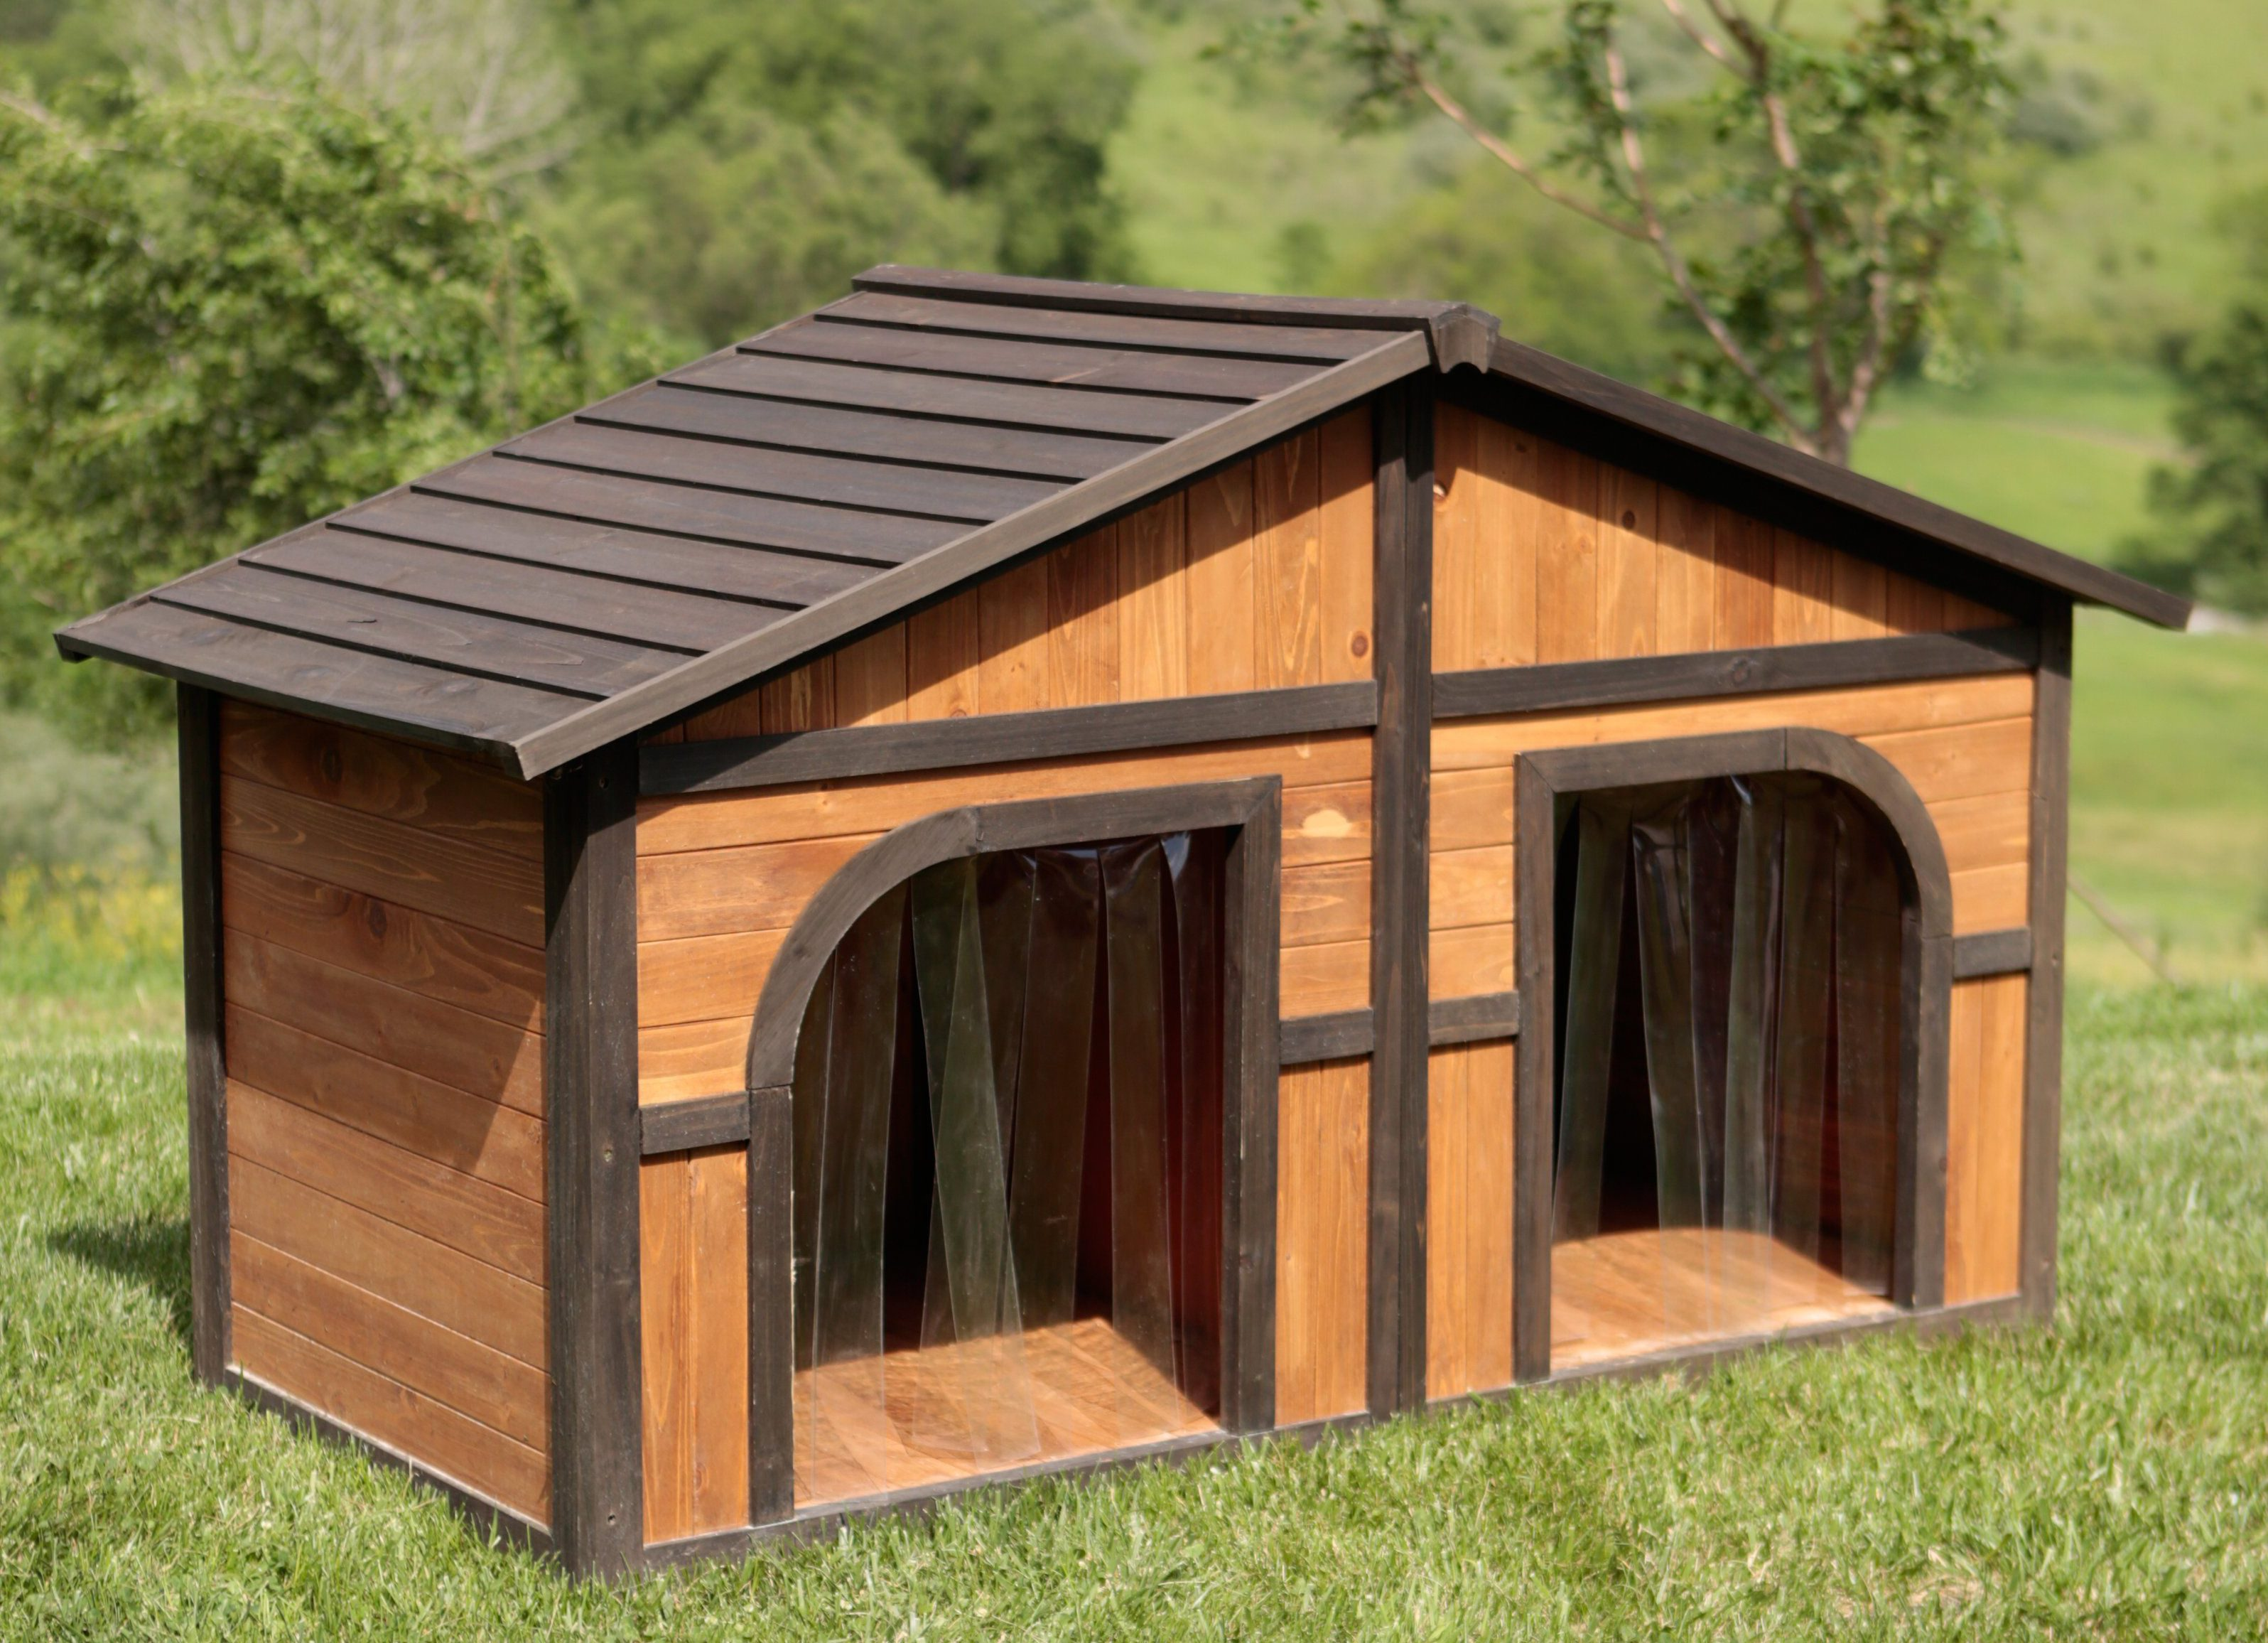 10 simple but beautiful diy dog house designs that you can for Architecture and design dog house